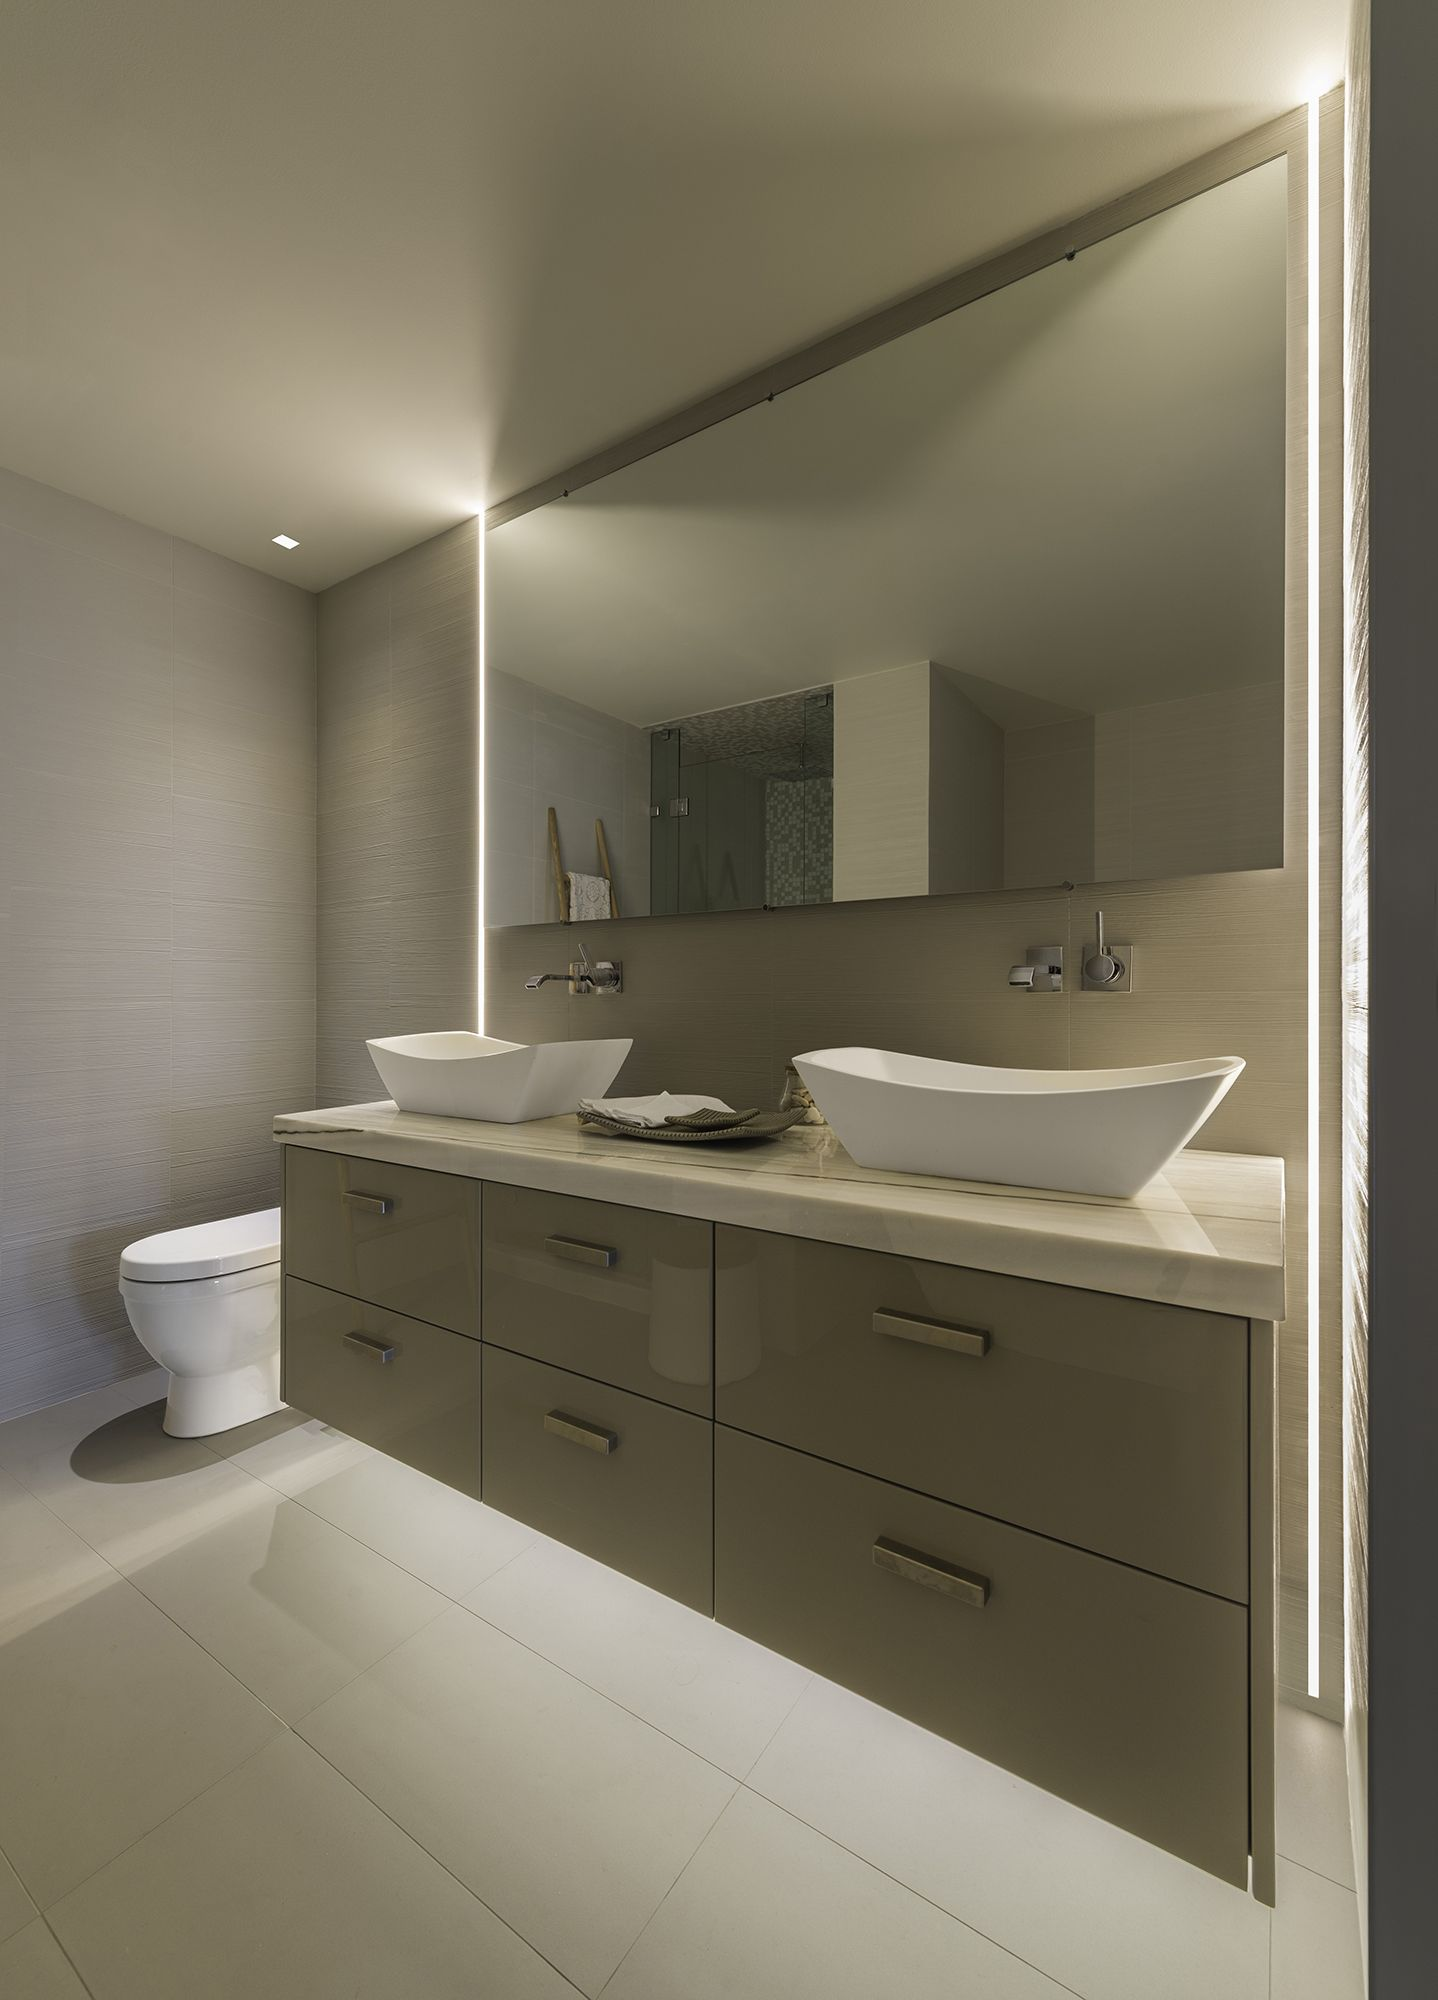 No Room Above Bathroom Mirror Modern Led Lighting For The Bathroom Truline